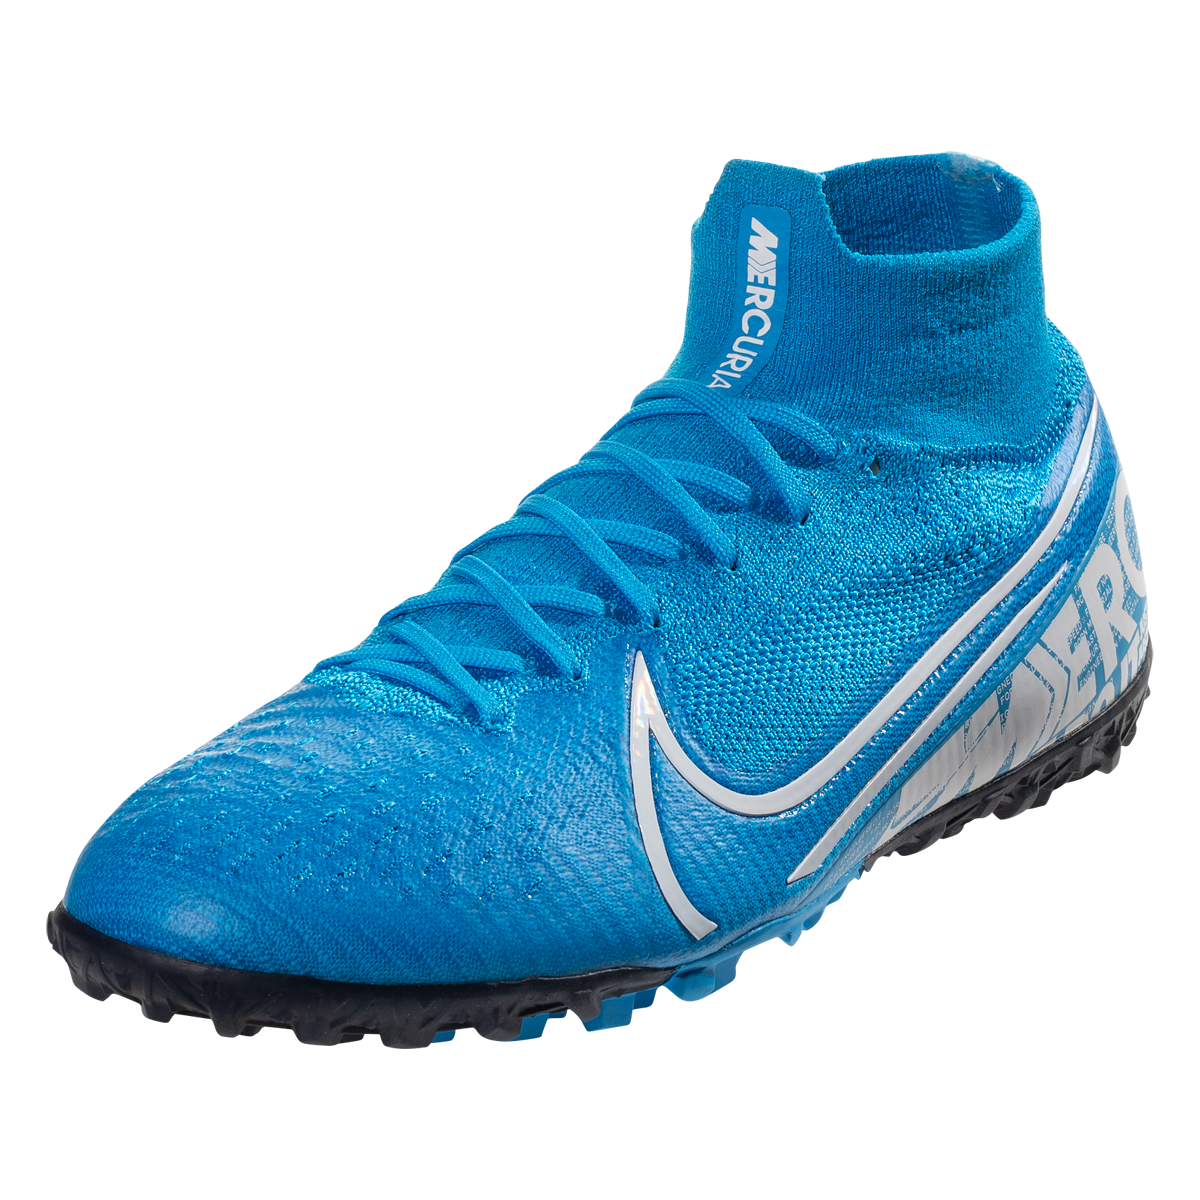 Nike Mercurial Superfly 7 Elite Tf Artificial Turf Soccer Shoe Blue Hero White Obsidian 11 5 Soccer Shoe Blue Shoes Superfly